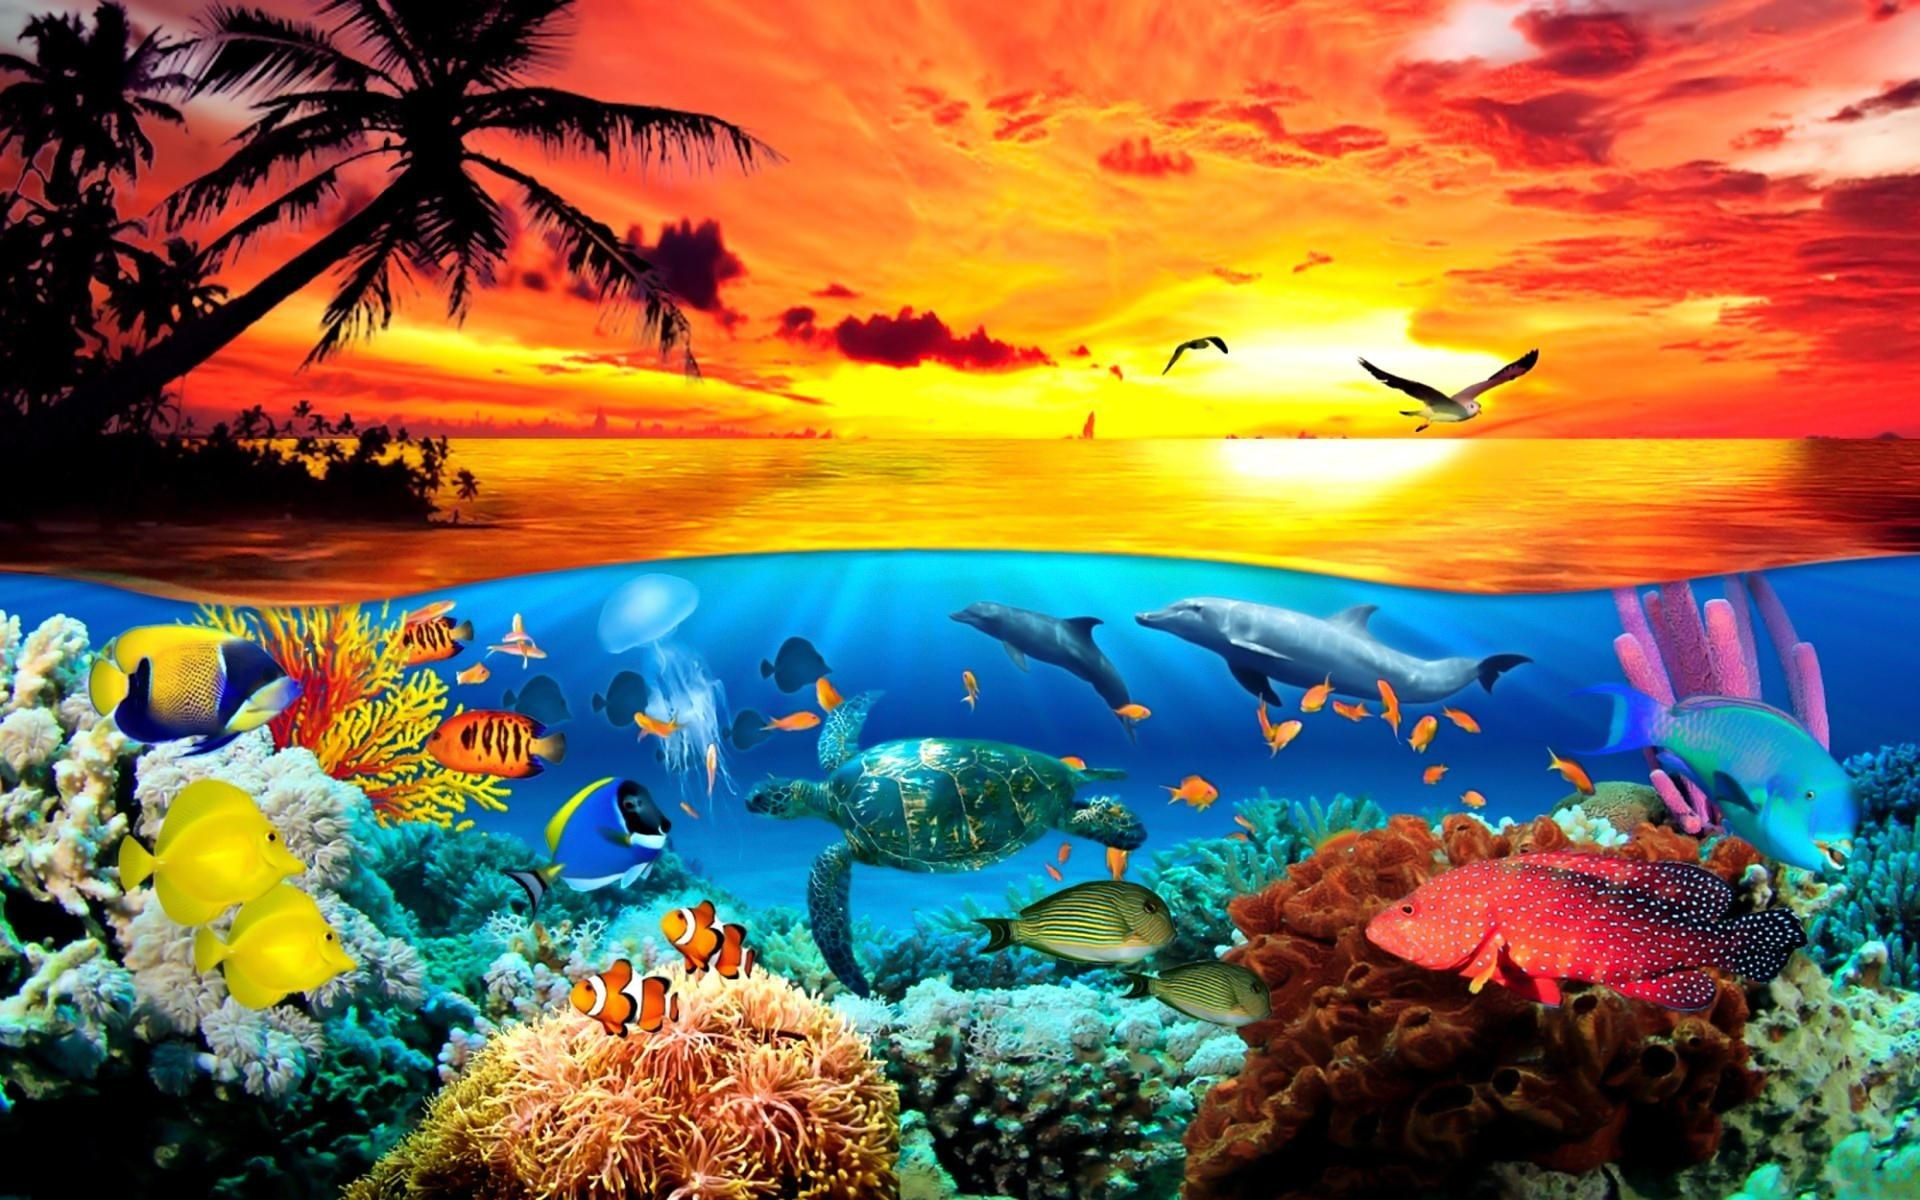 Res: 1920x1200, Under The Sea Animals World Wallpaper - DreamLoveWallpapers